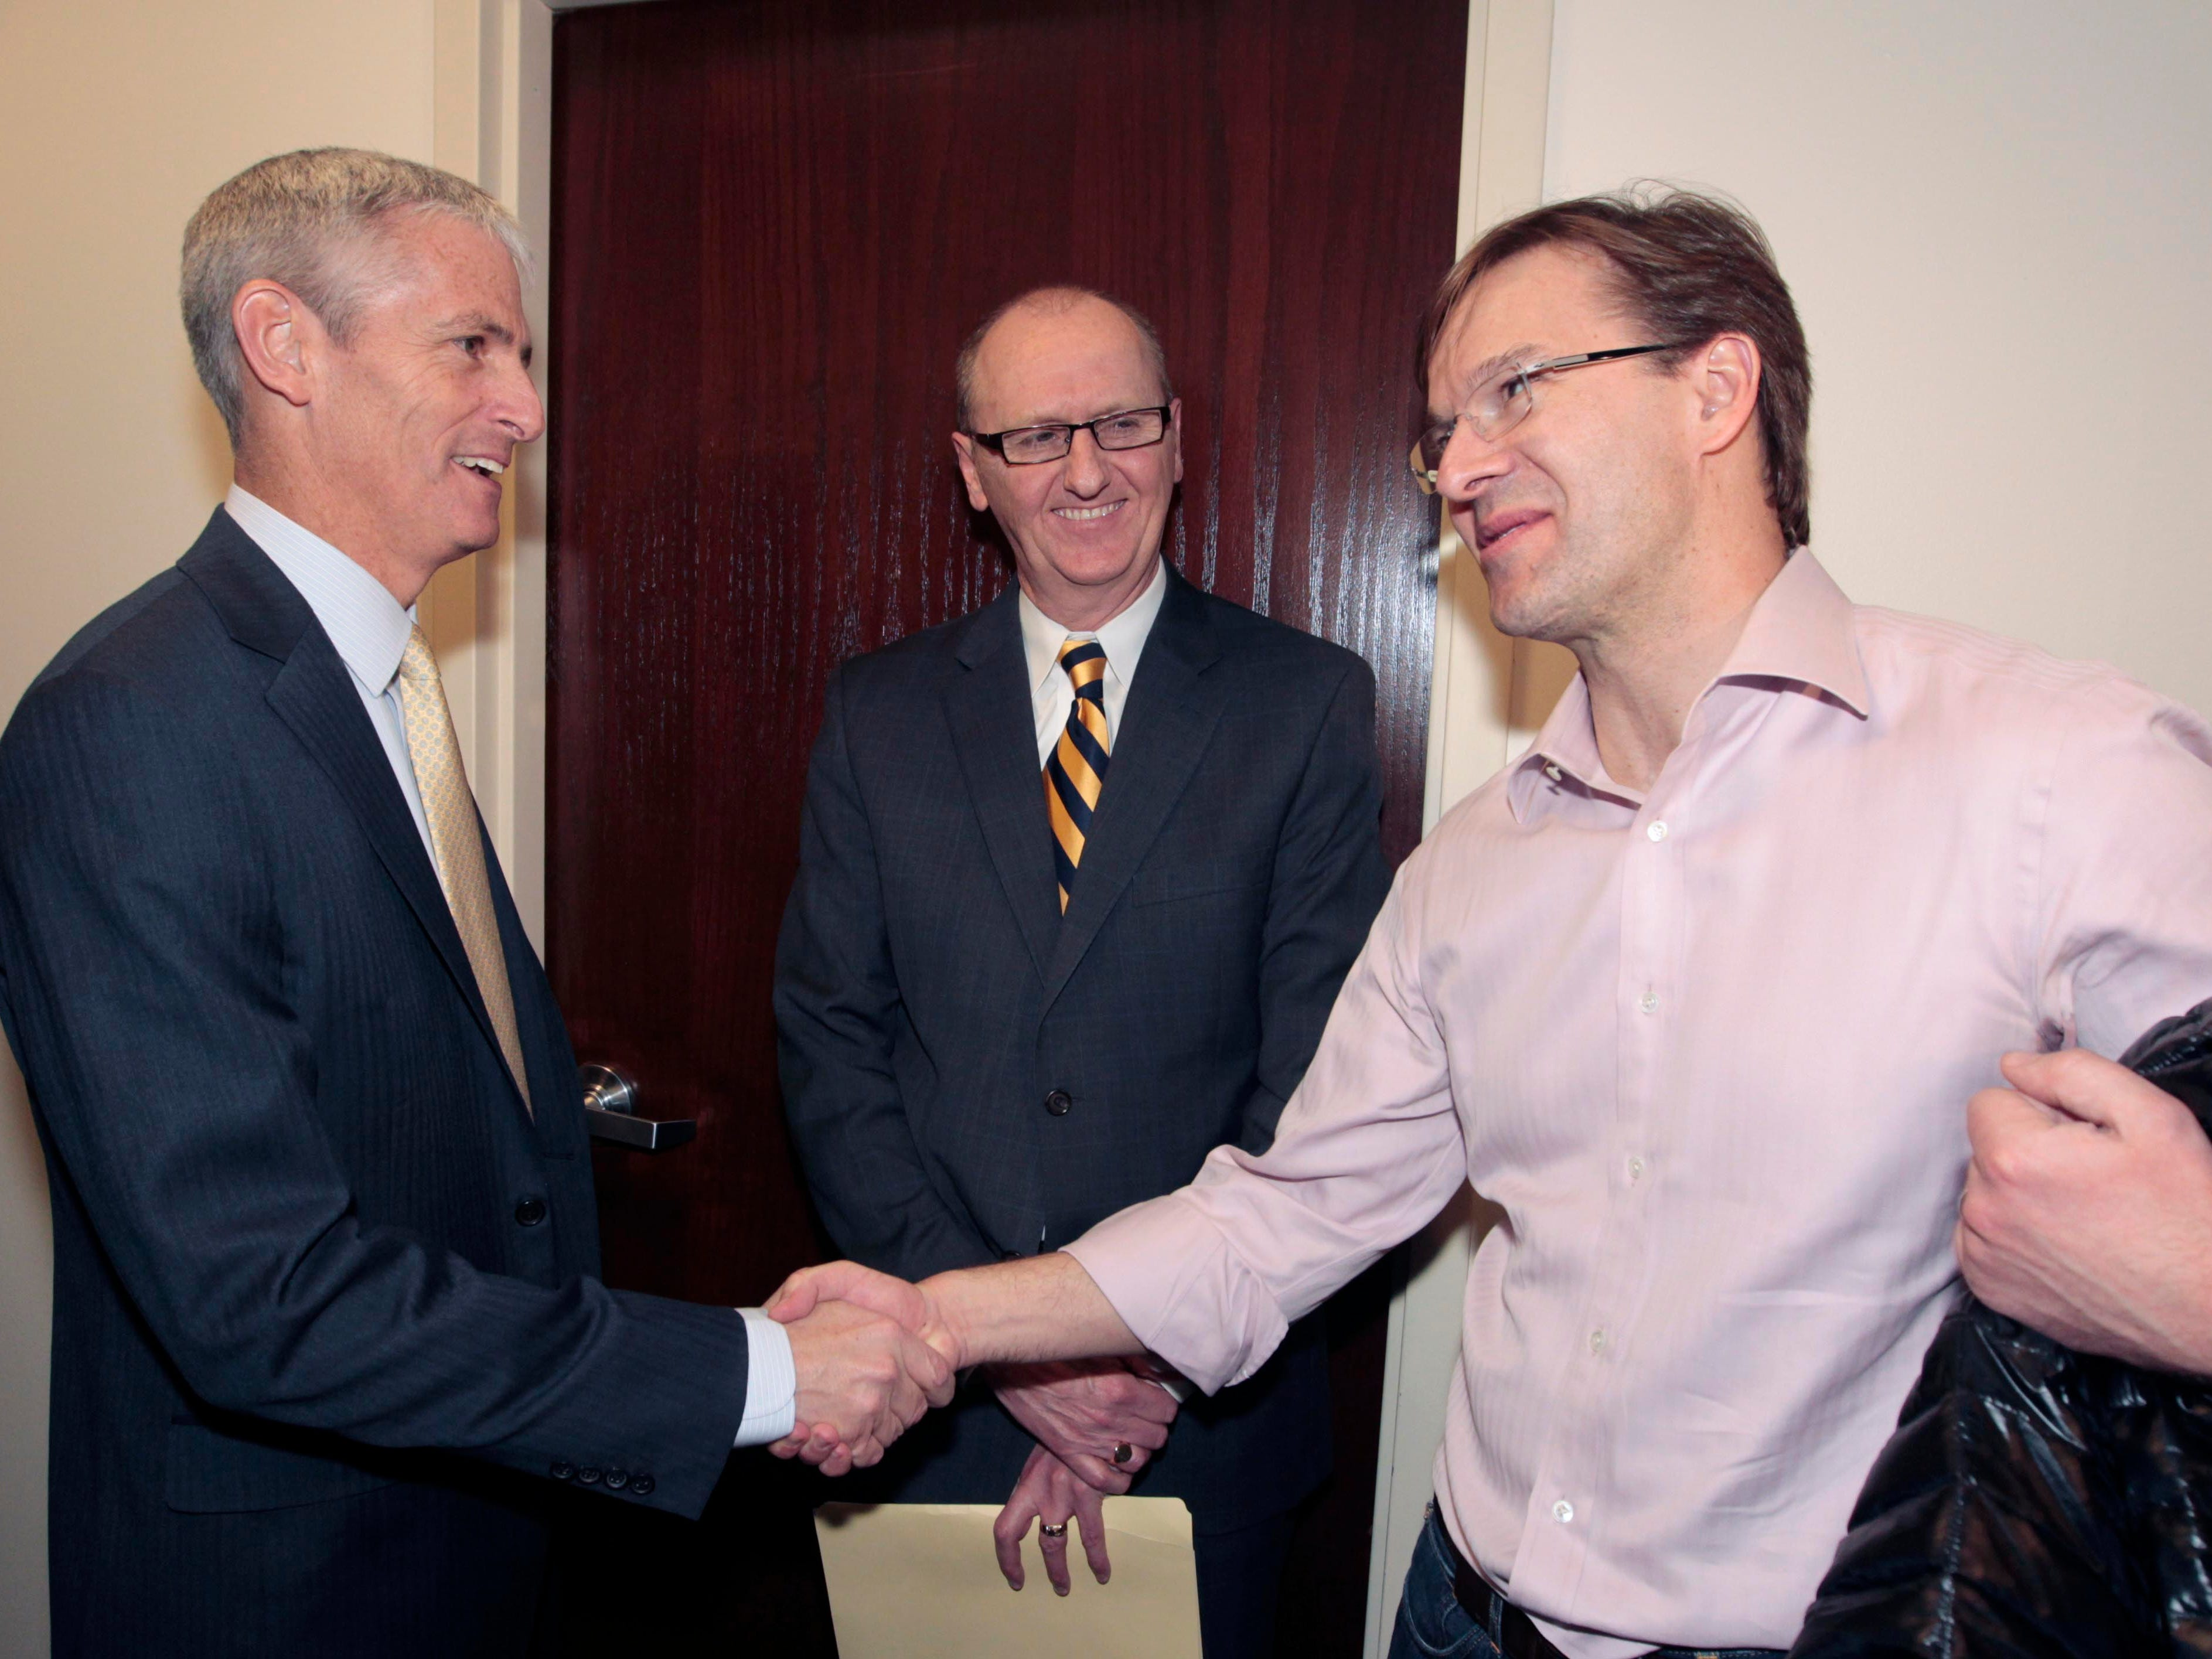 2014: Former University of Wisconsin-Milwaukee Chancellor Michael Lovell  greets Milwaukee County Executive Chris Abele after Lovell is introduced as the new president of Marquette  University.  He is the first layman to be president in the university's 132-year history.